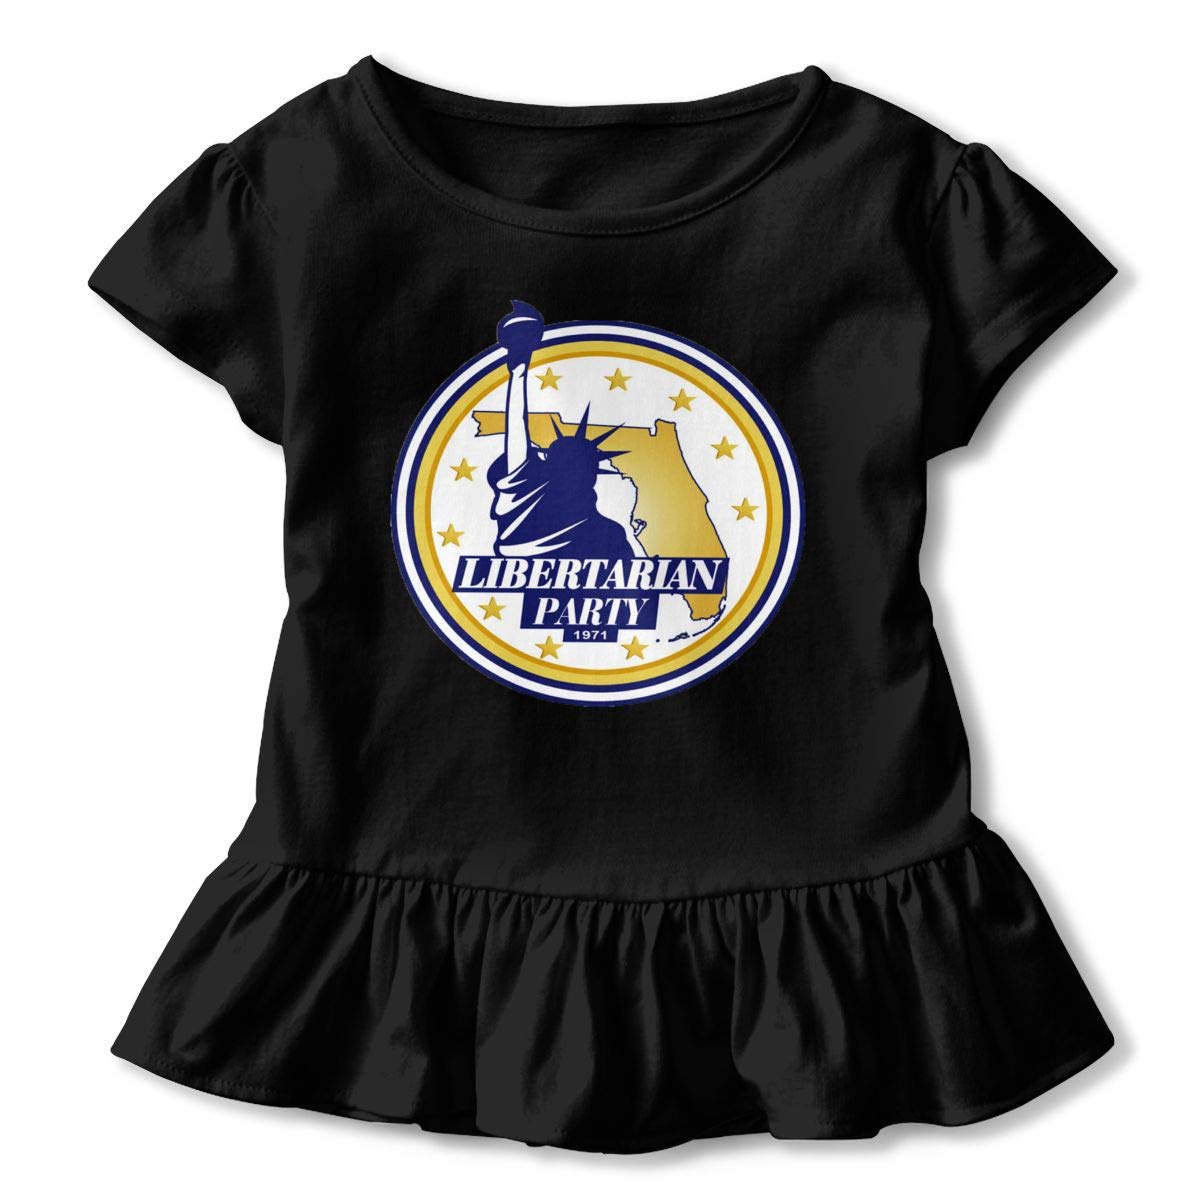 United States Libertarian Party Shirt Printed Baby Girls Flounced T Shirts Shirt Dress for 2-6T Kids Girls